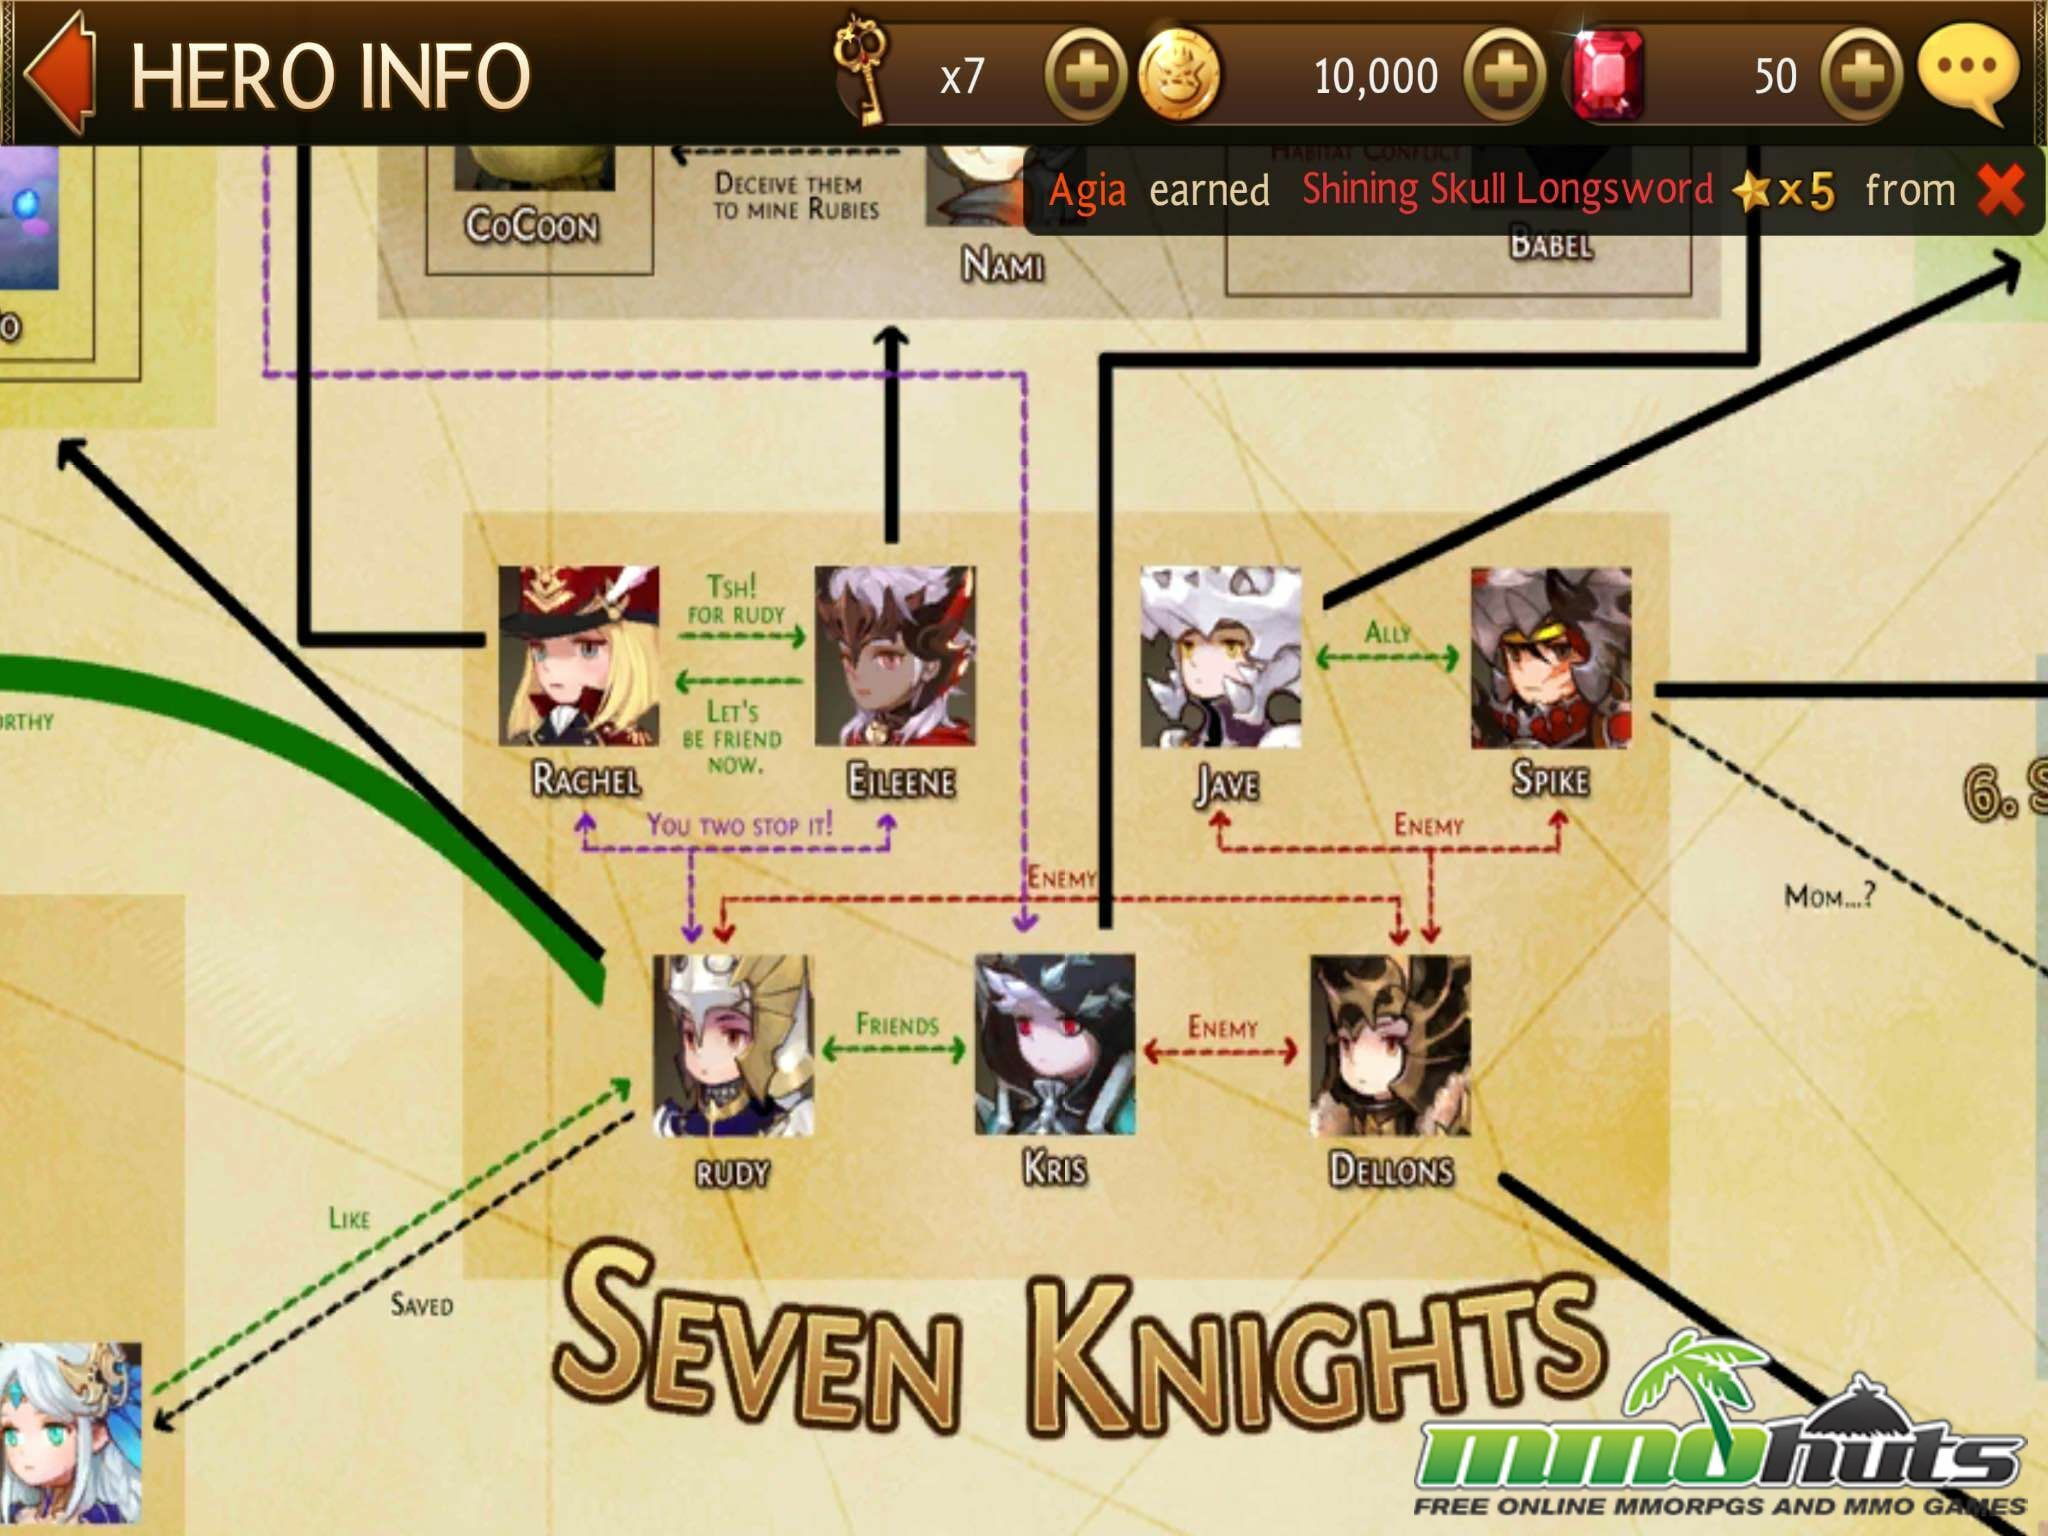 seven knights ios review mmohuts Summoners War Surprisr Box Fuse if you're feeling lost in the story, the character relations sheet can help